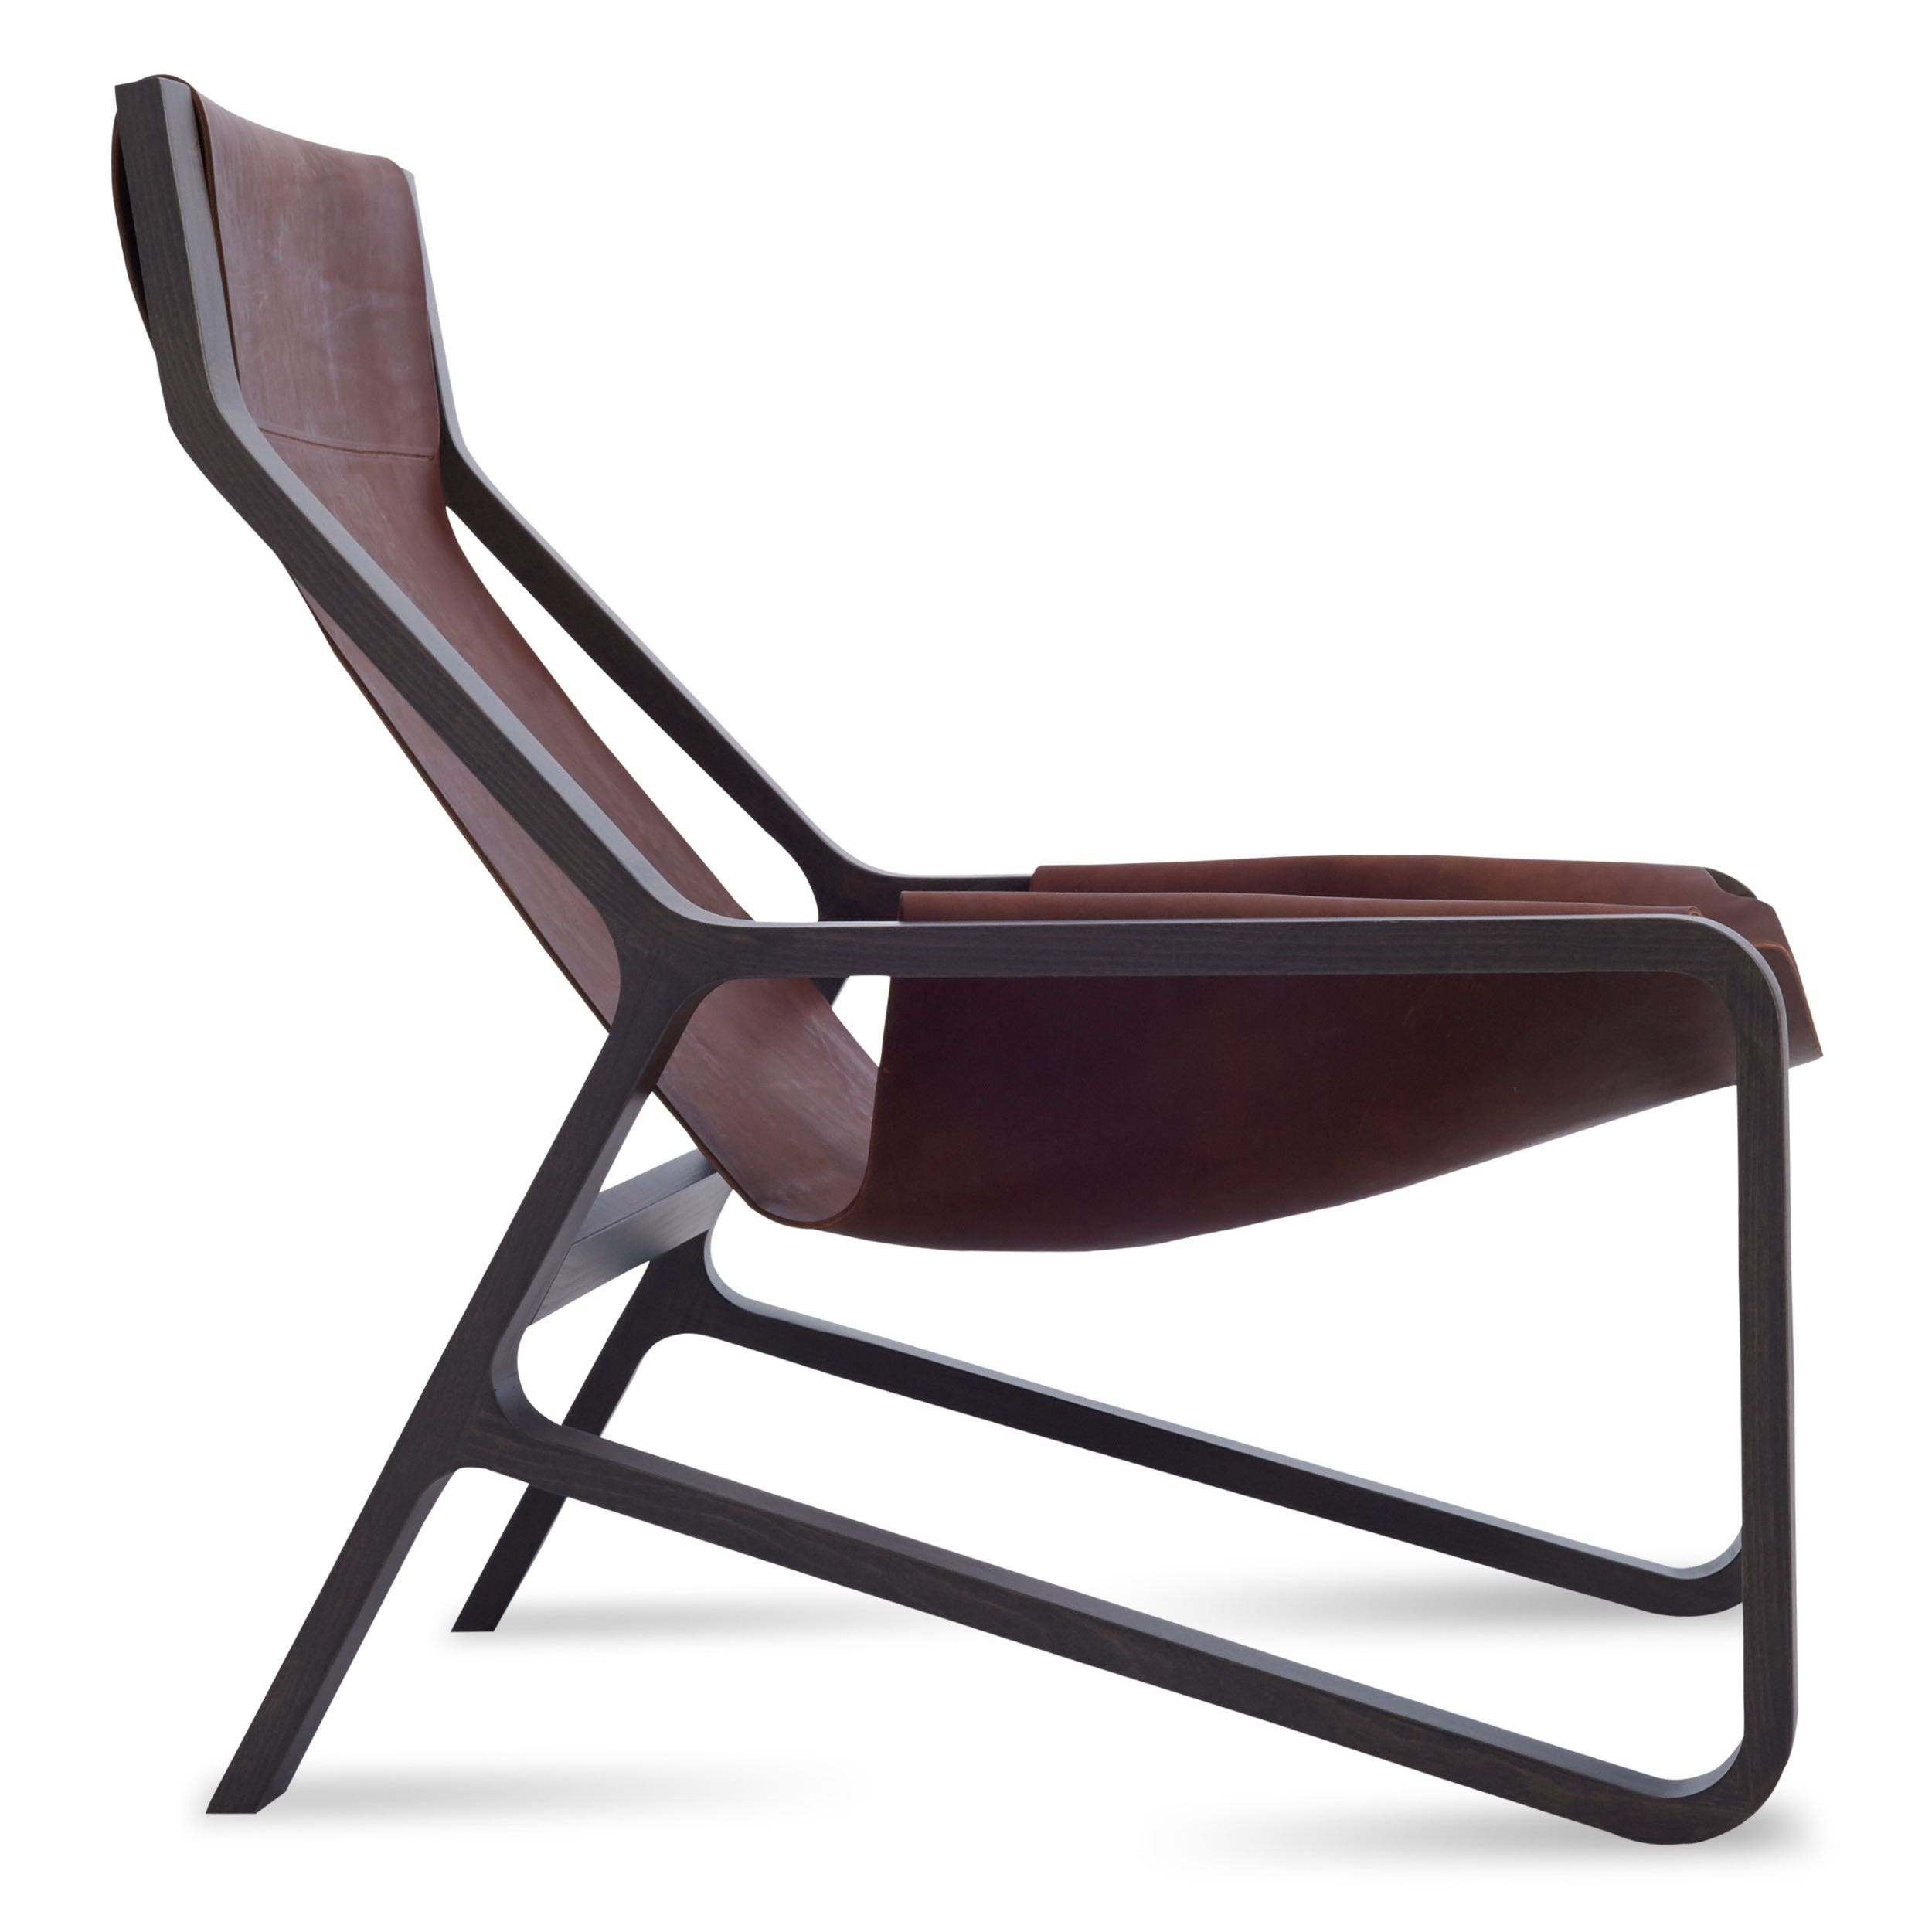 corbusier black chair modern by le charlotte jeanneret products resale pierre perriand cassina and used leather lounge